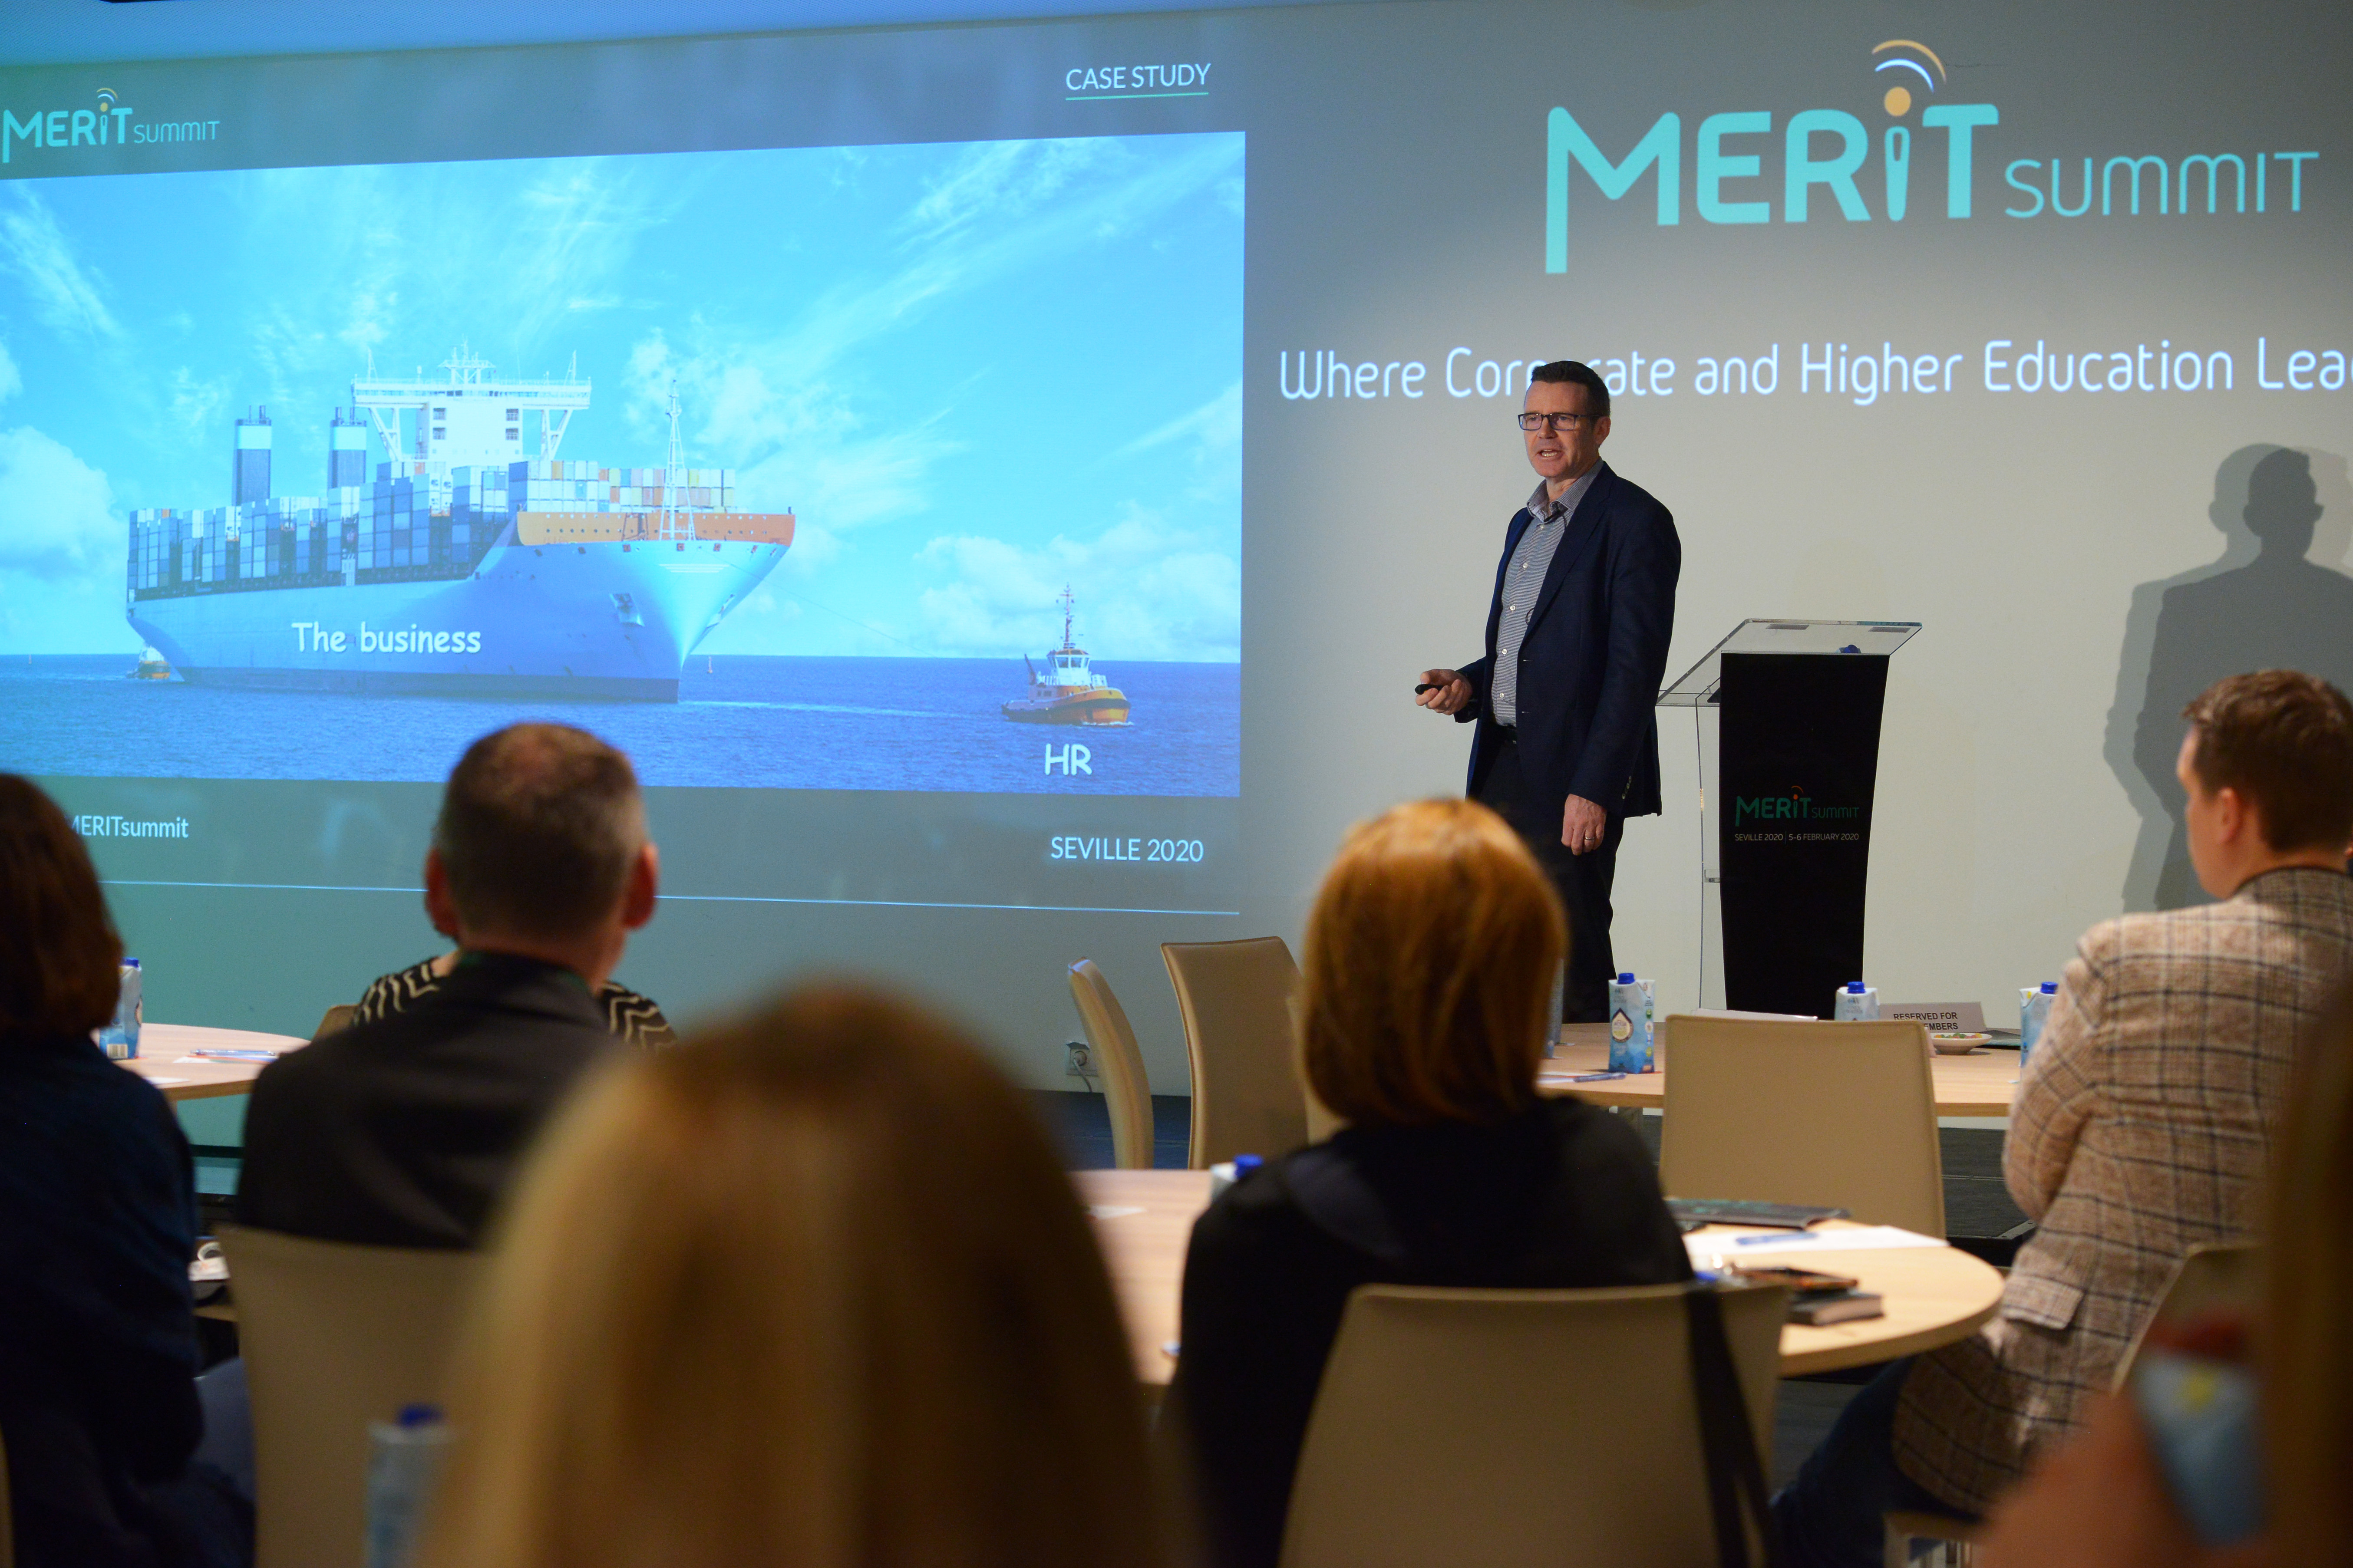 James Purvis, Head of HR, CERN, presents a case study of HR biases at the MERIT Annual Summit